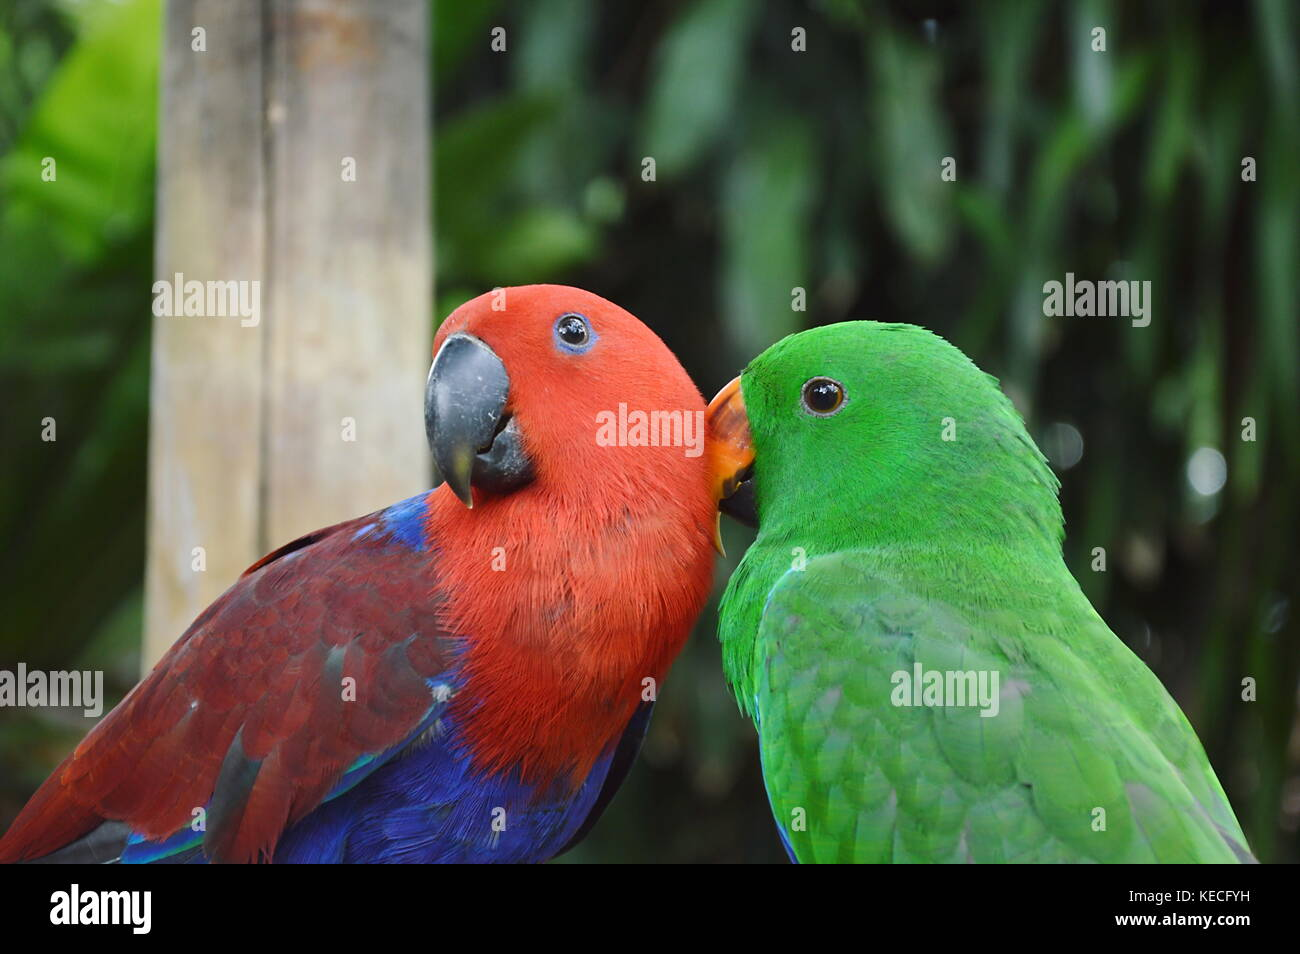 colorful parrot preening together in garden - Stock Image